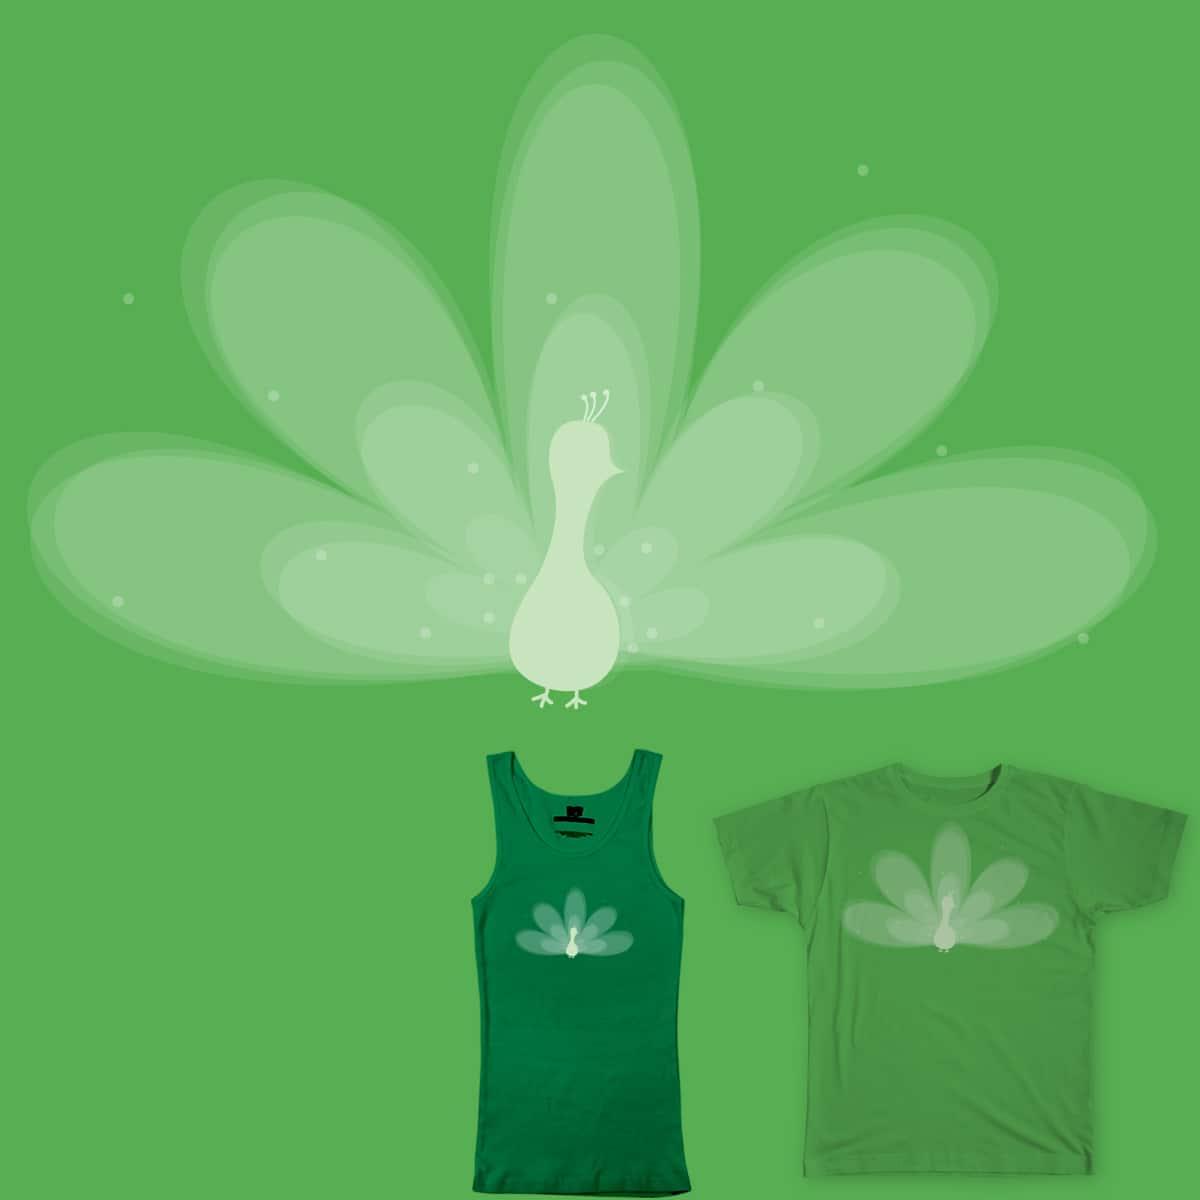 beautiful even in monochromatic by marielosq on Threadless